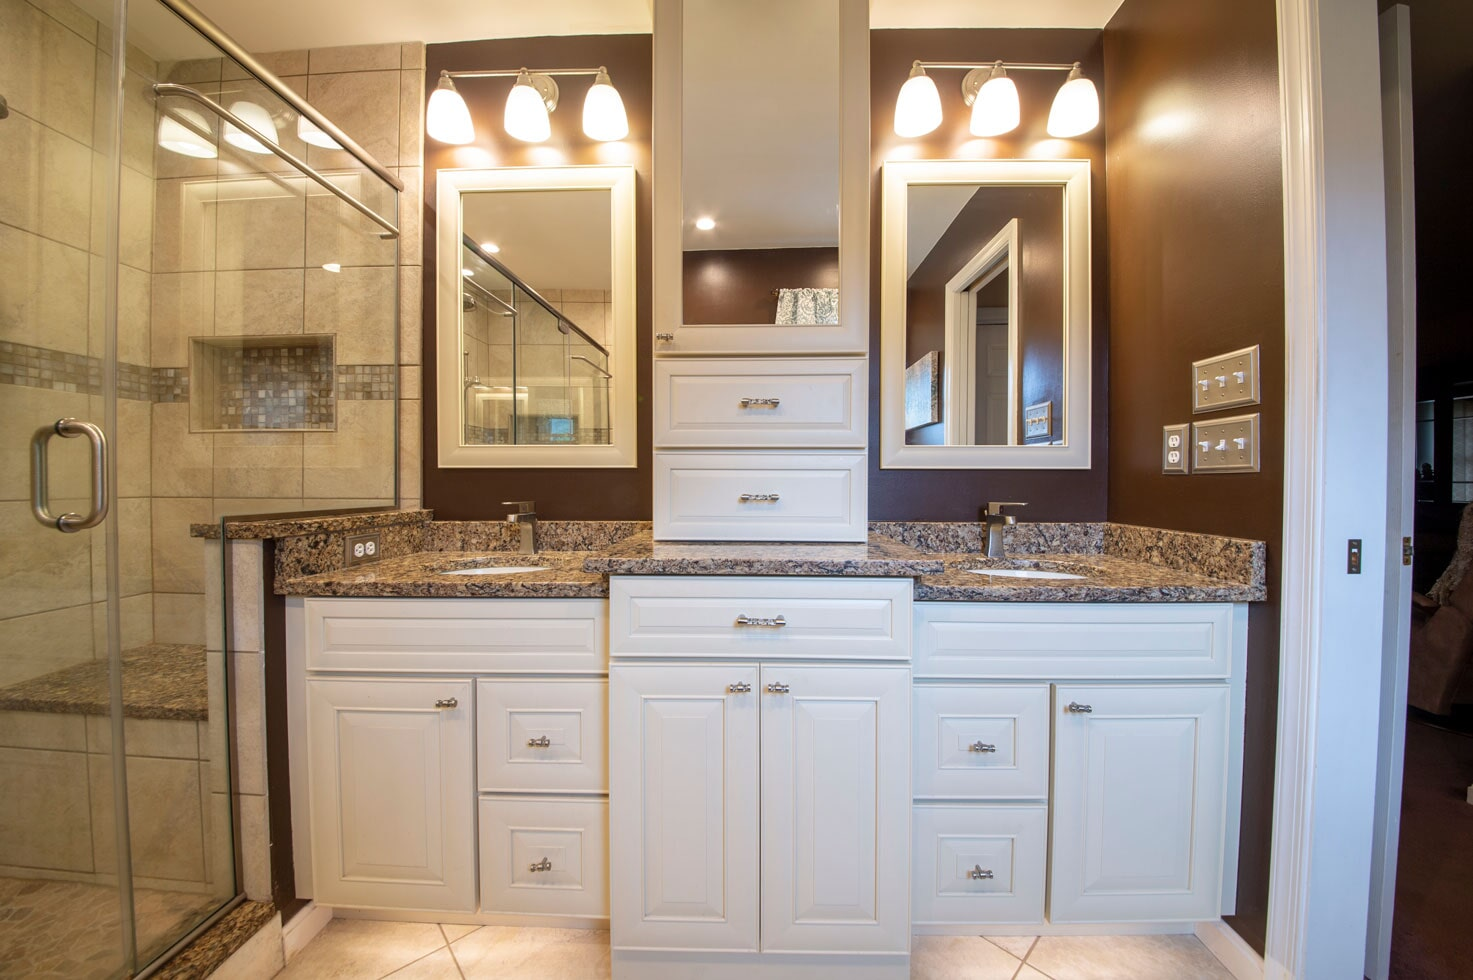 Bathroom remodeling in Lexington park, MD by Southern Maryland Kitchen, Bath, Floors & Design